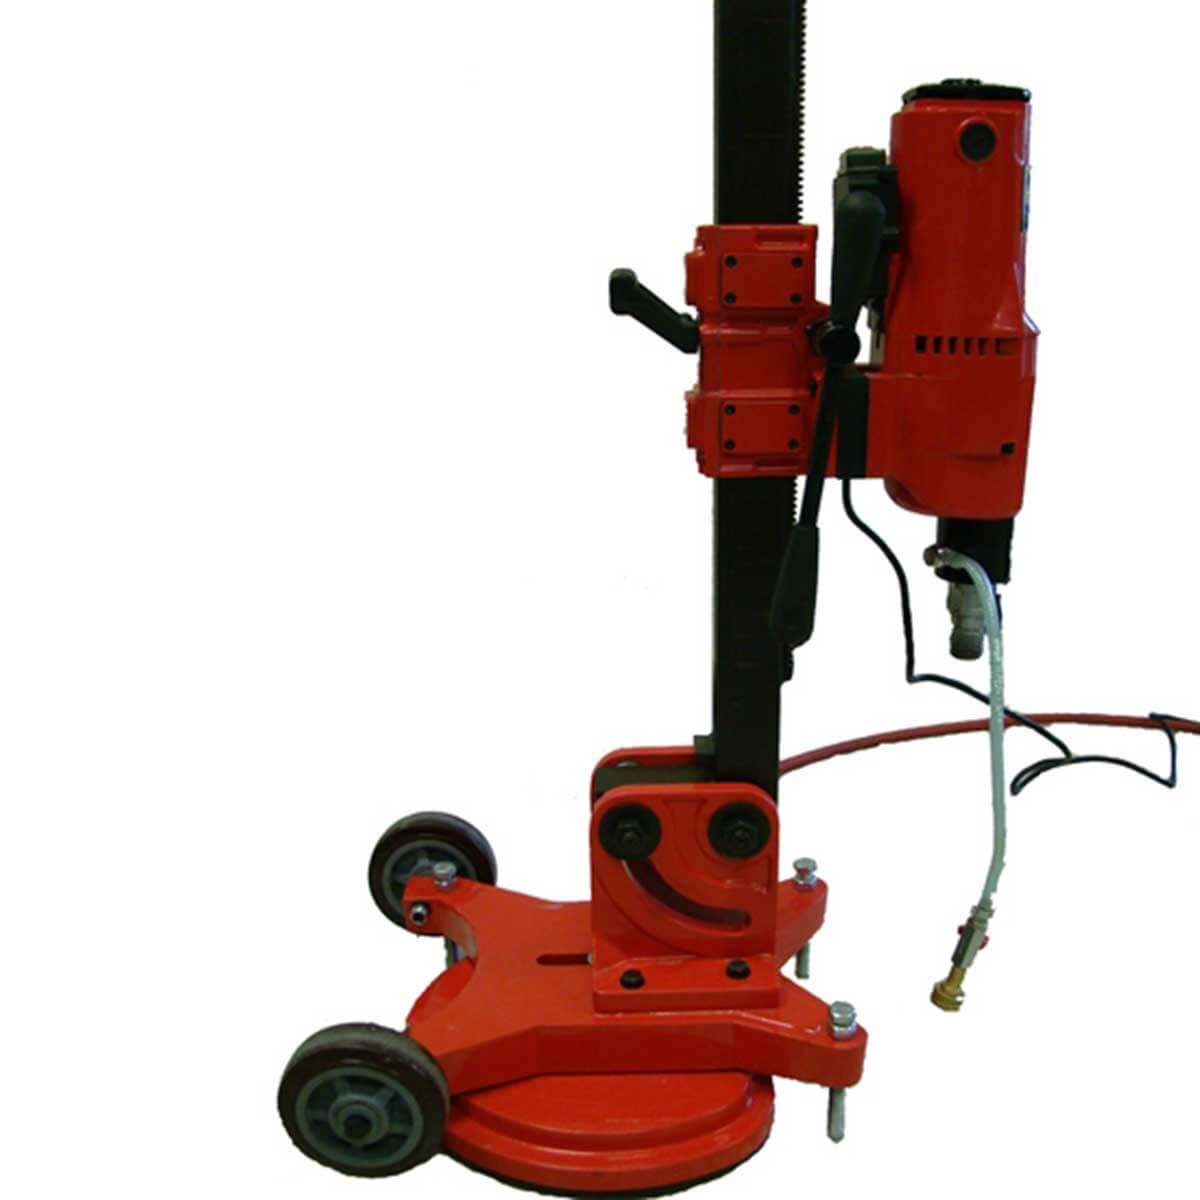 Kor-It Anchor Vacuum Base stand